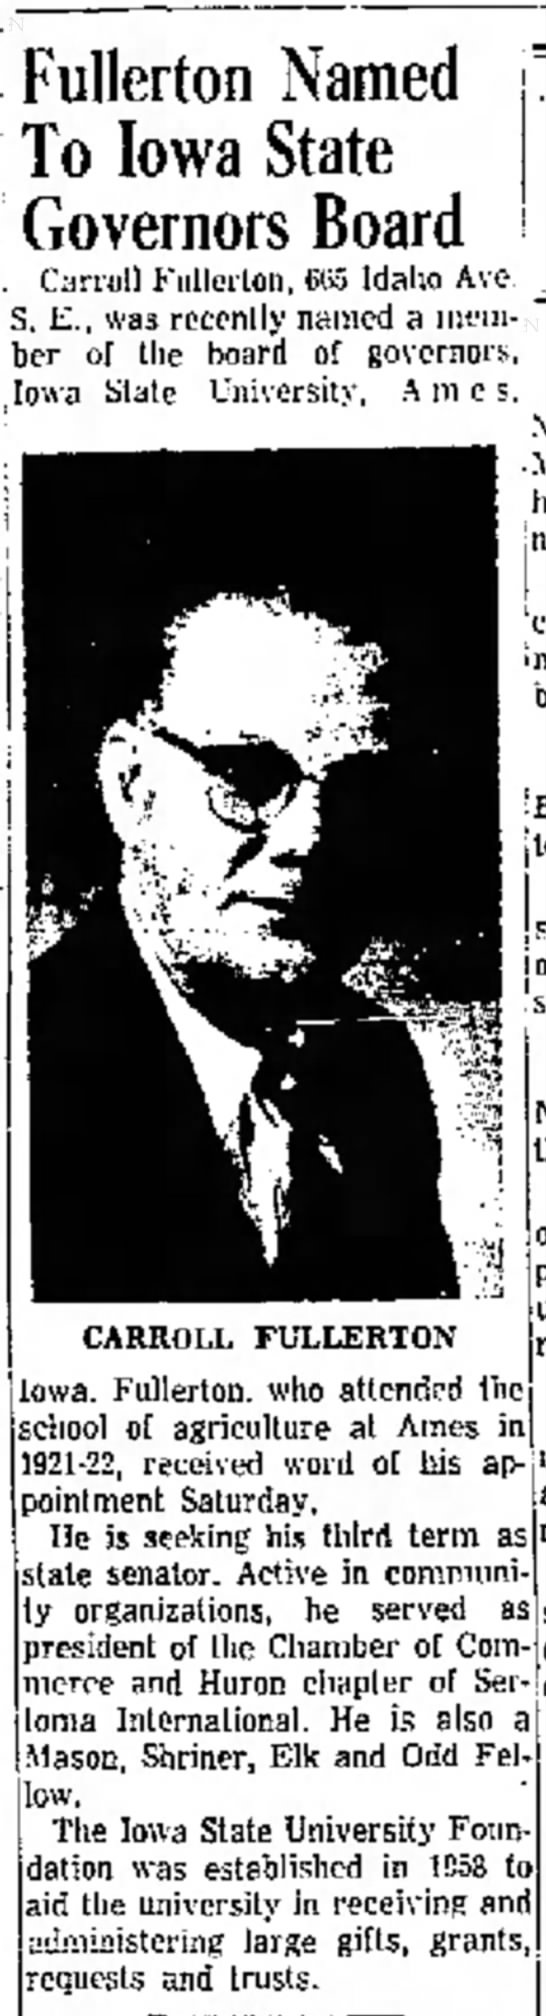 Carroll Fullerton Named to Iowa State Governors Board - 30 June 1960 -